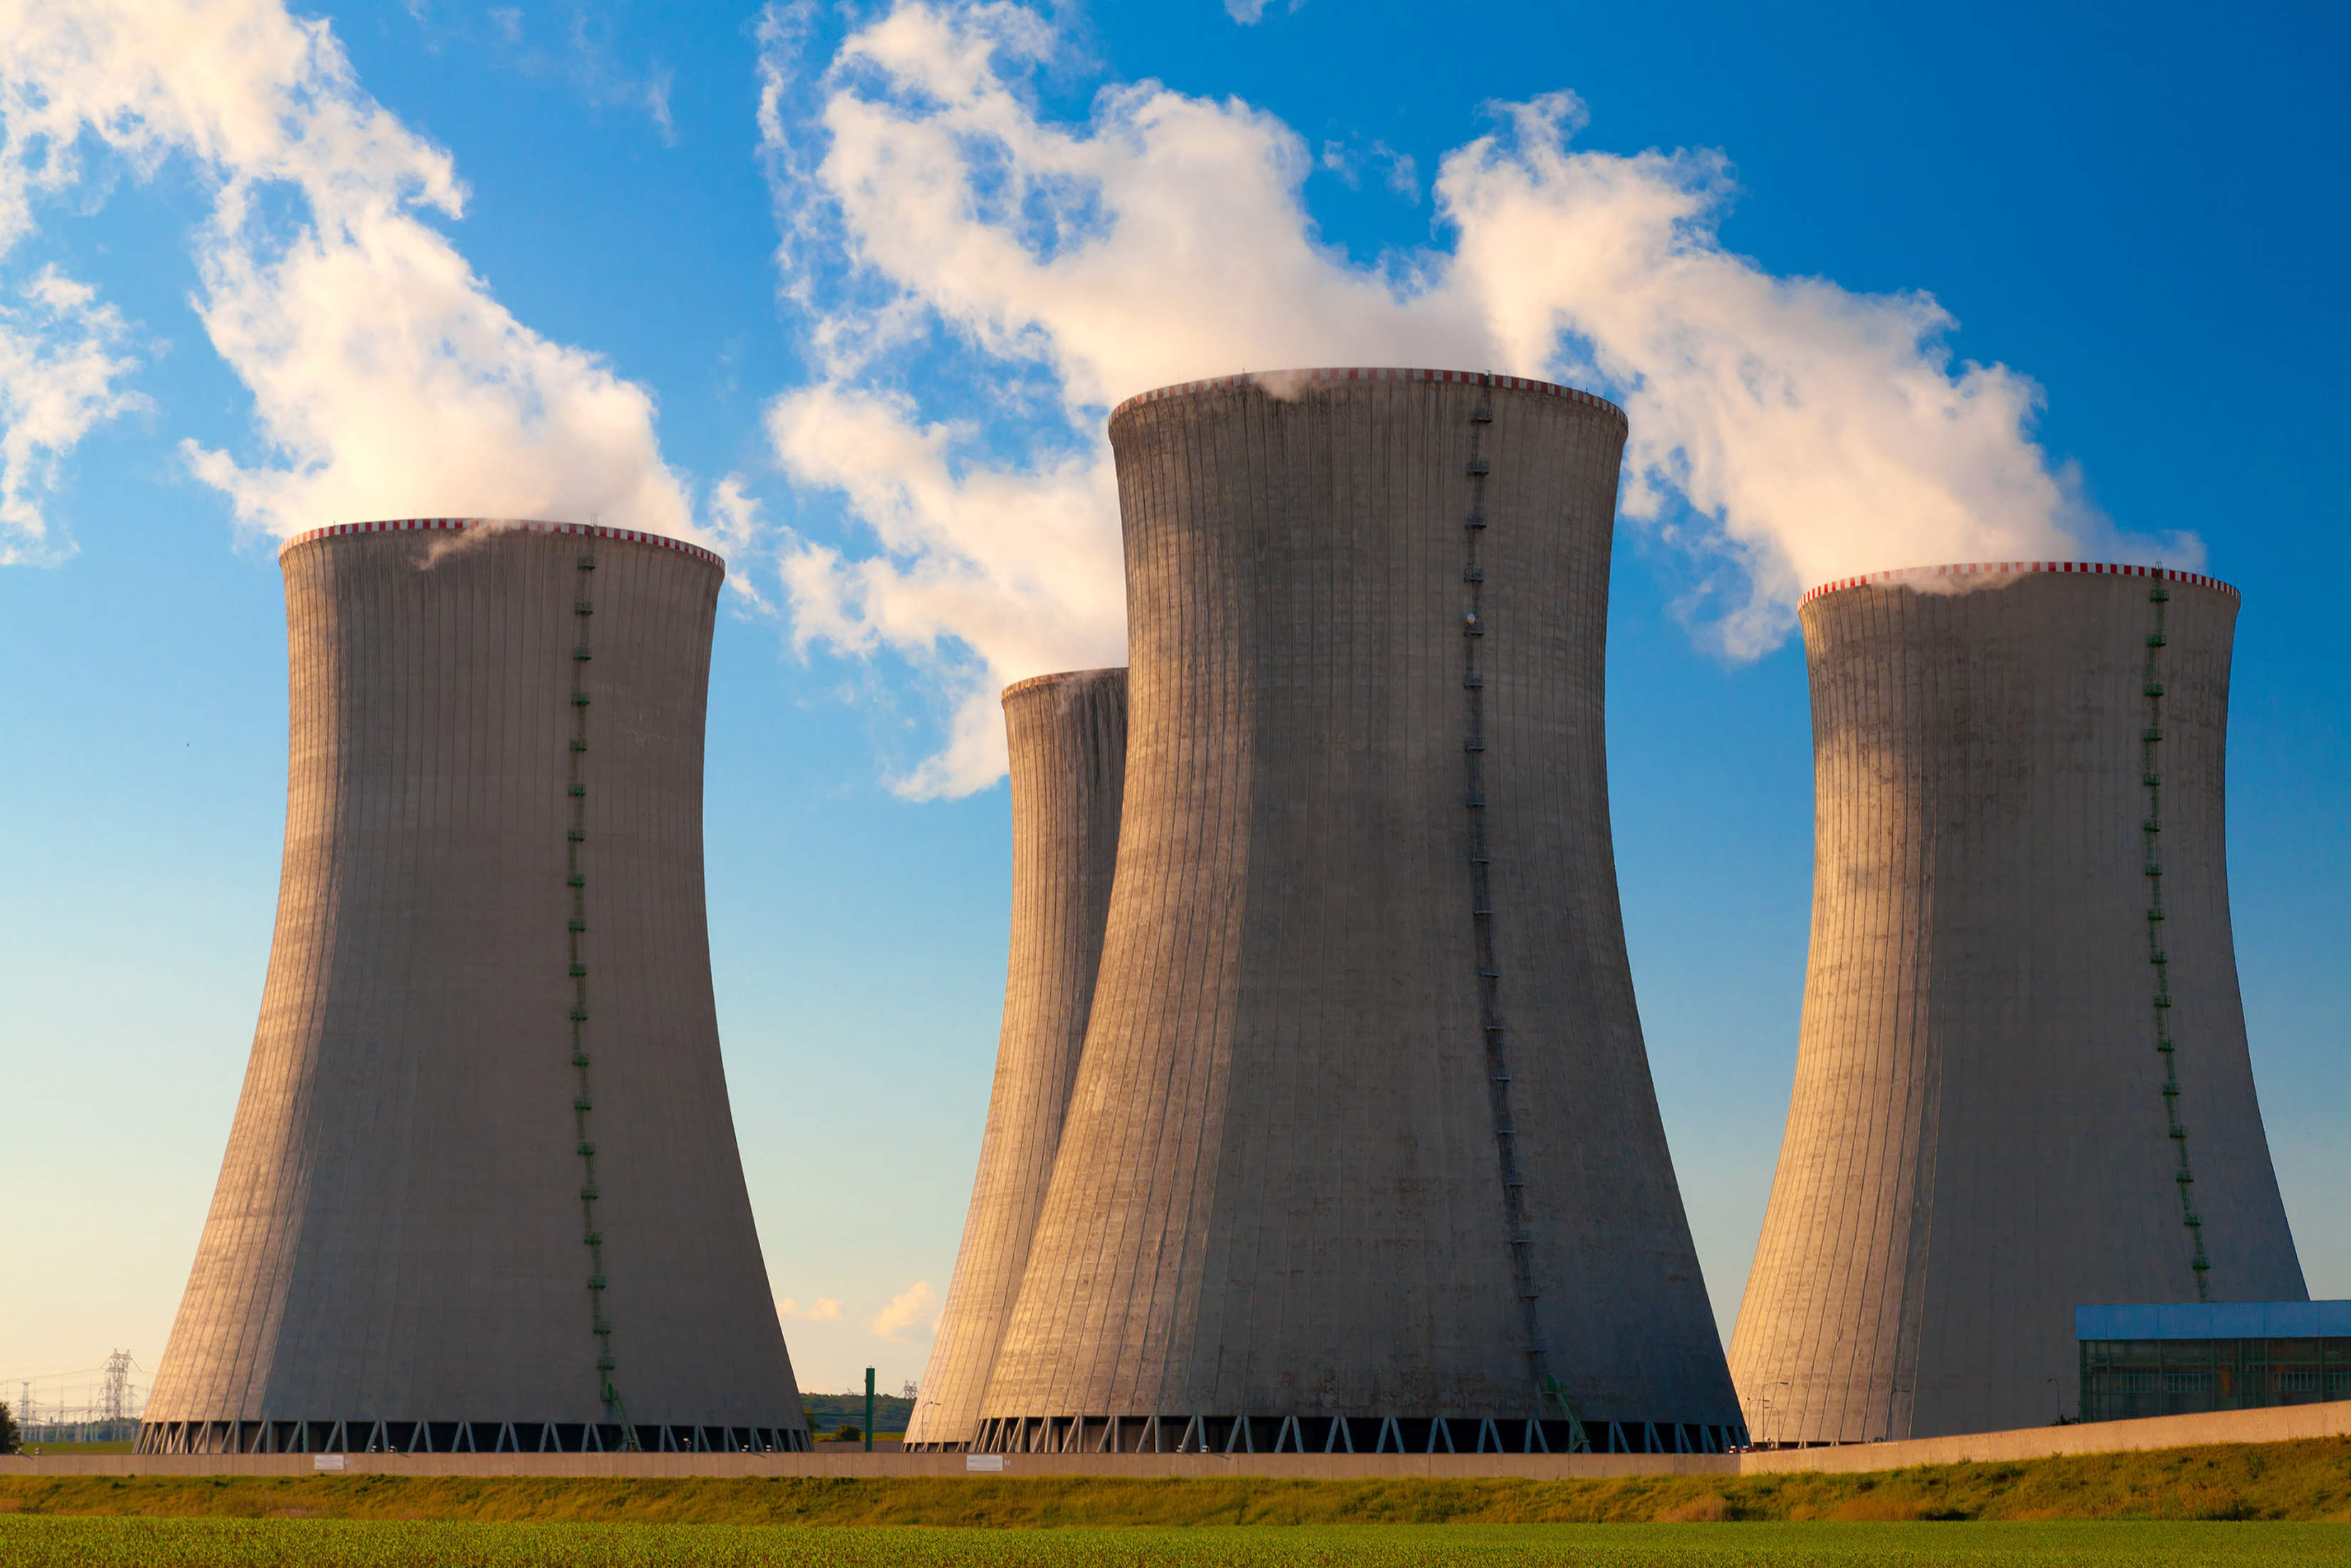 uk nuclear power strategy, no-deal Brexit UK energy sector